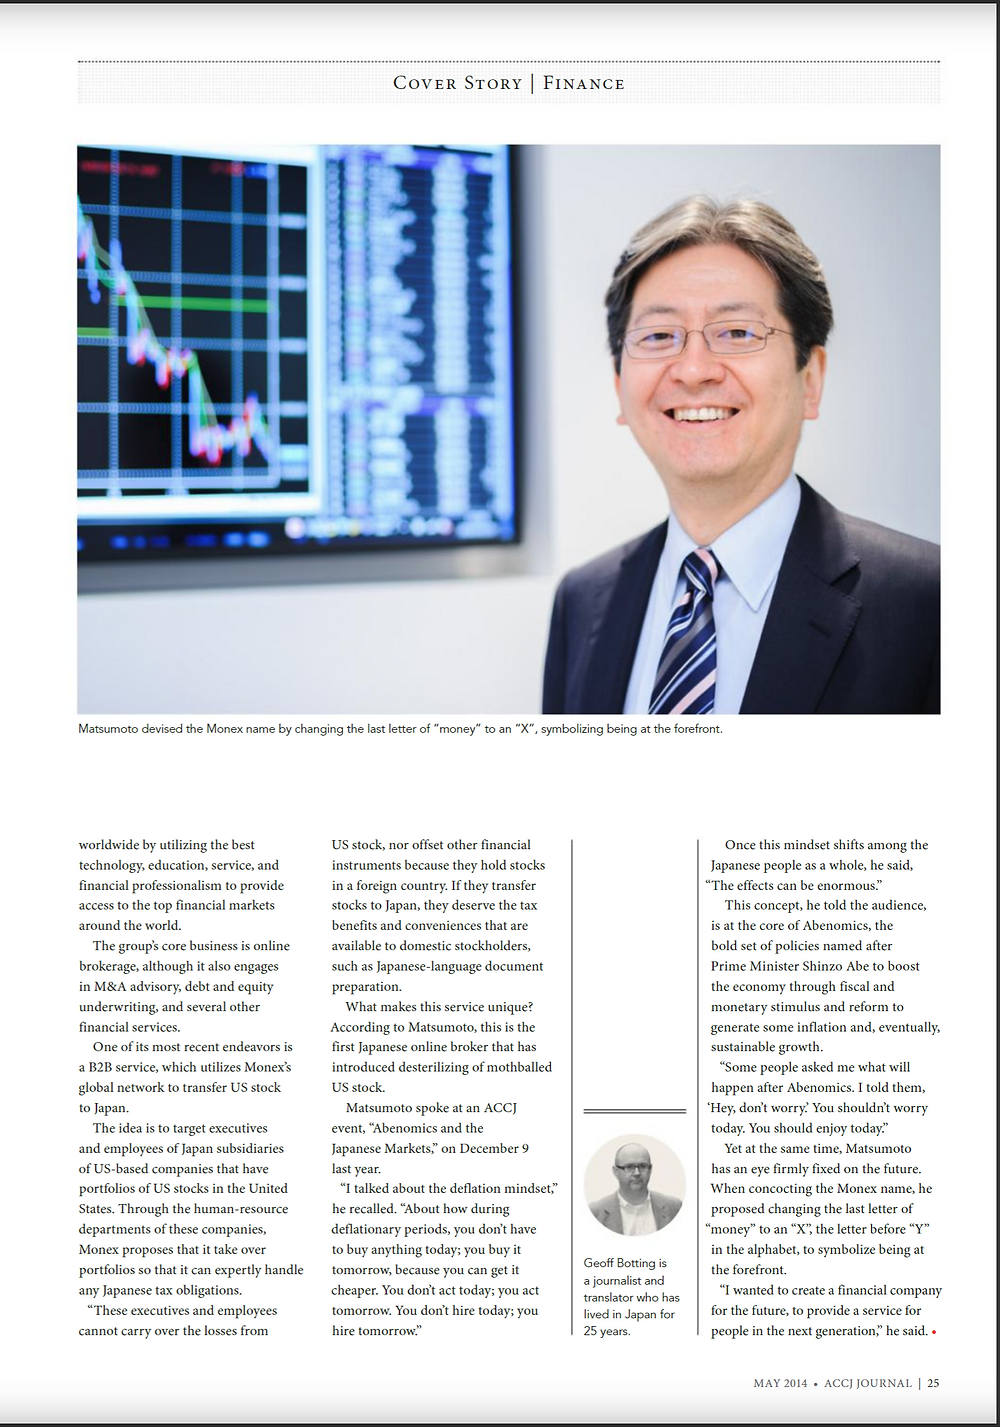 "COVER STORY | FINANCE May 2014  Oki Matsumoto: Monex Group, Inc. Creating a financial company for the future  Wall Street investment banks have become the stuff of legend; places where ""masters of the universe"" routinely move massive amounts of money around the globe. The banks are also highly coveted by young and fiercely ambitious university graduates. But in Japan in the 1980s, their name recognition was close to zero, even among job-seeking grads, recalled Oki Matsumoto, CEO of Monex Group, Inc., an online brokerage based in Tokyo but with group companies and subsidiaries around the world. https://journal.accj.or.jp/cover-story-finance/  The ACCJ - 在日米国商工会議所 http://www.accj.or.jp"